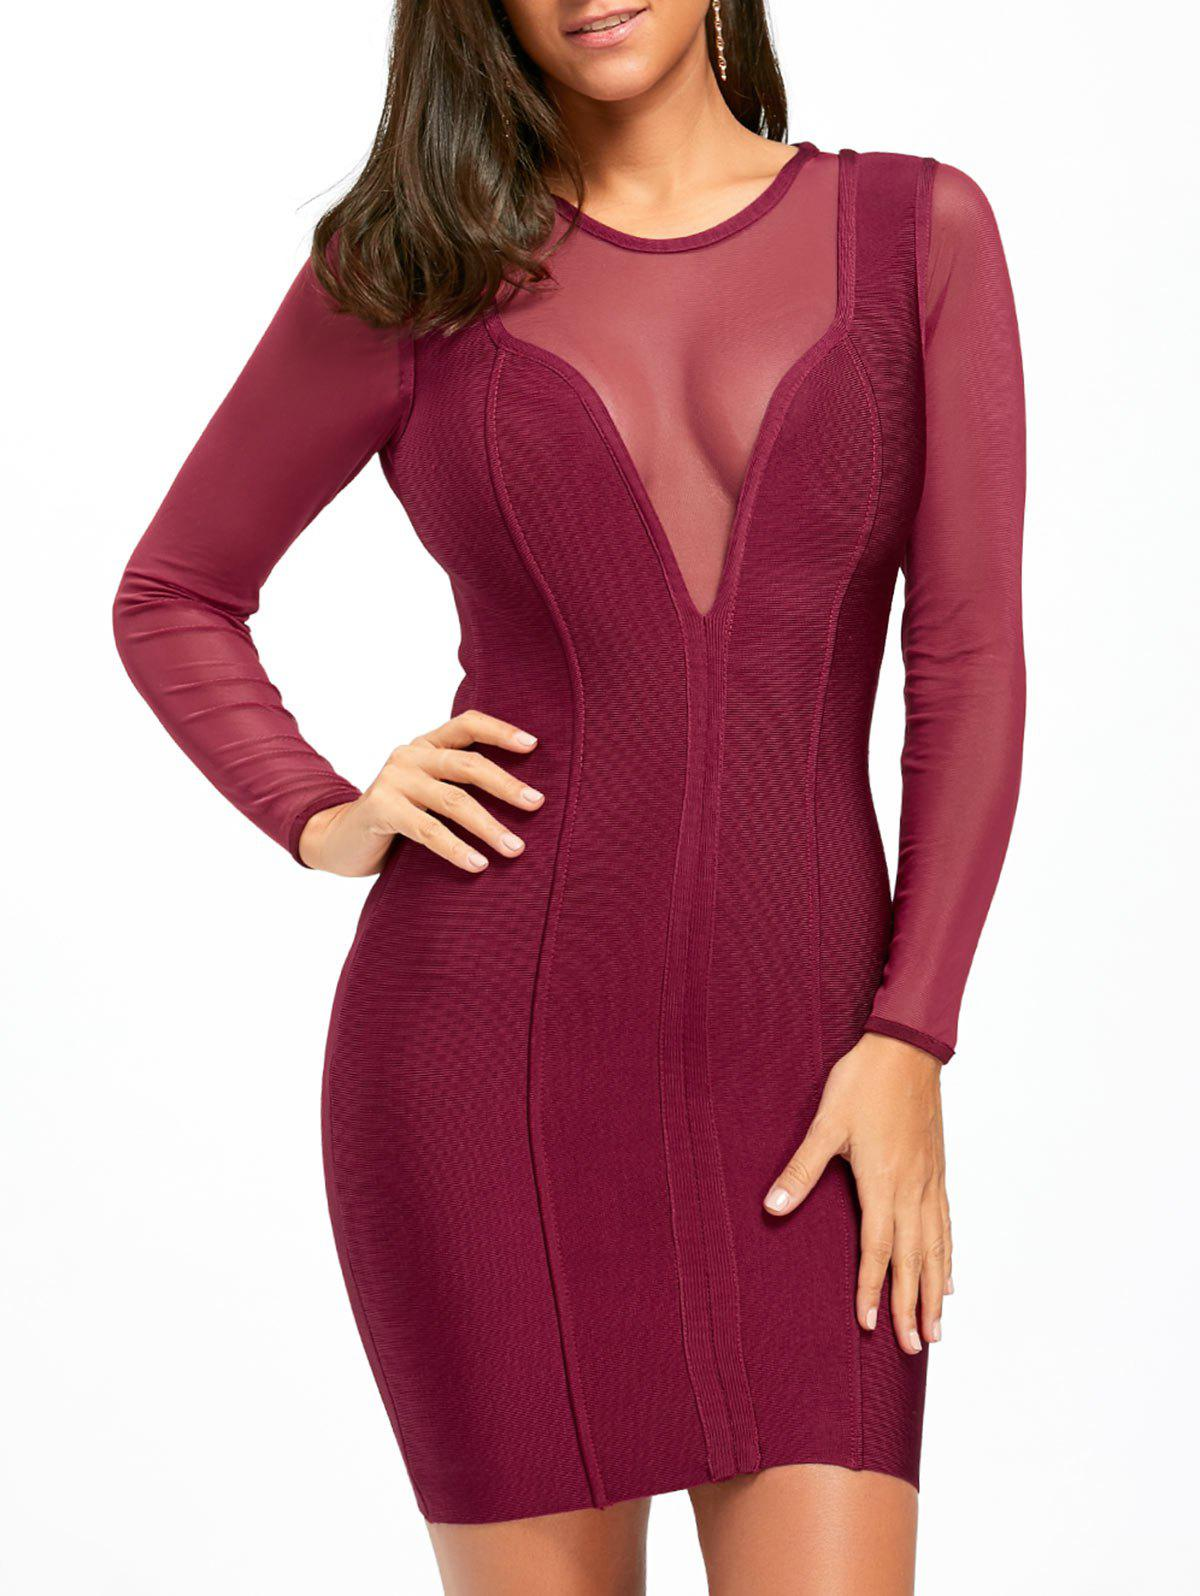 Mesh Insert Sheer Long Sleeve Bandage Dress - PURPLISH RED L